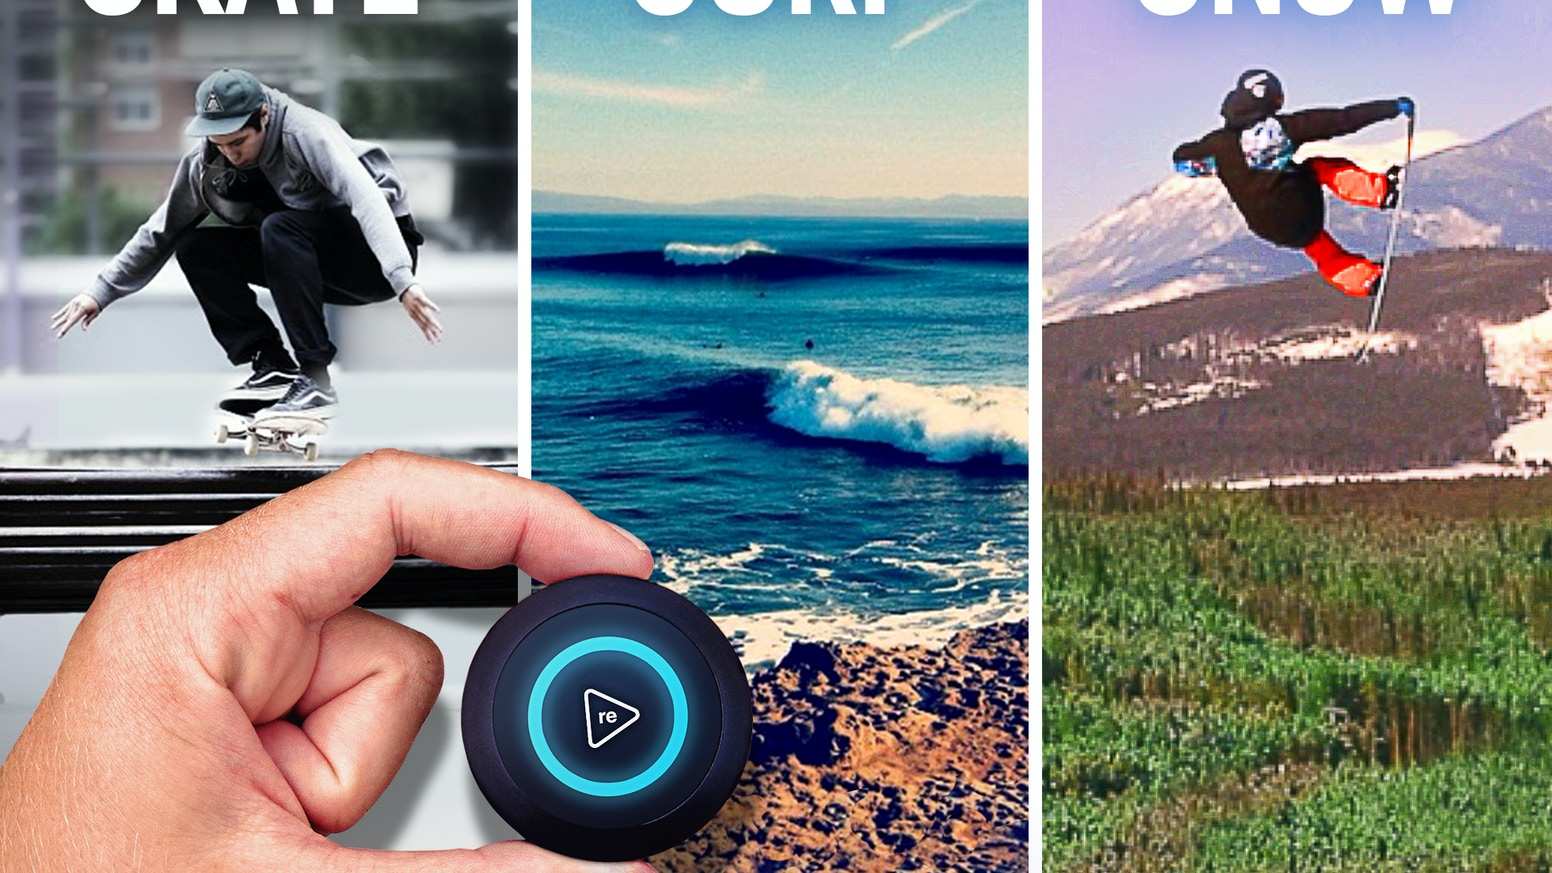 TRACE - The Most Advanced Activity Monitor for Action Sports